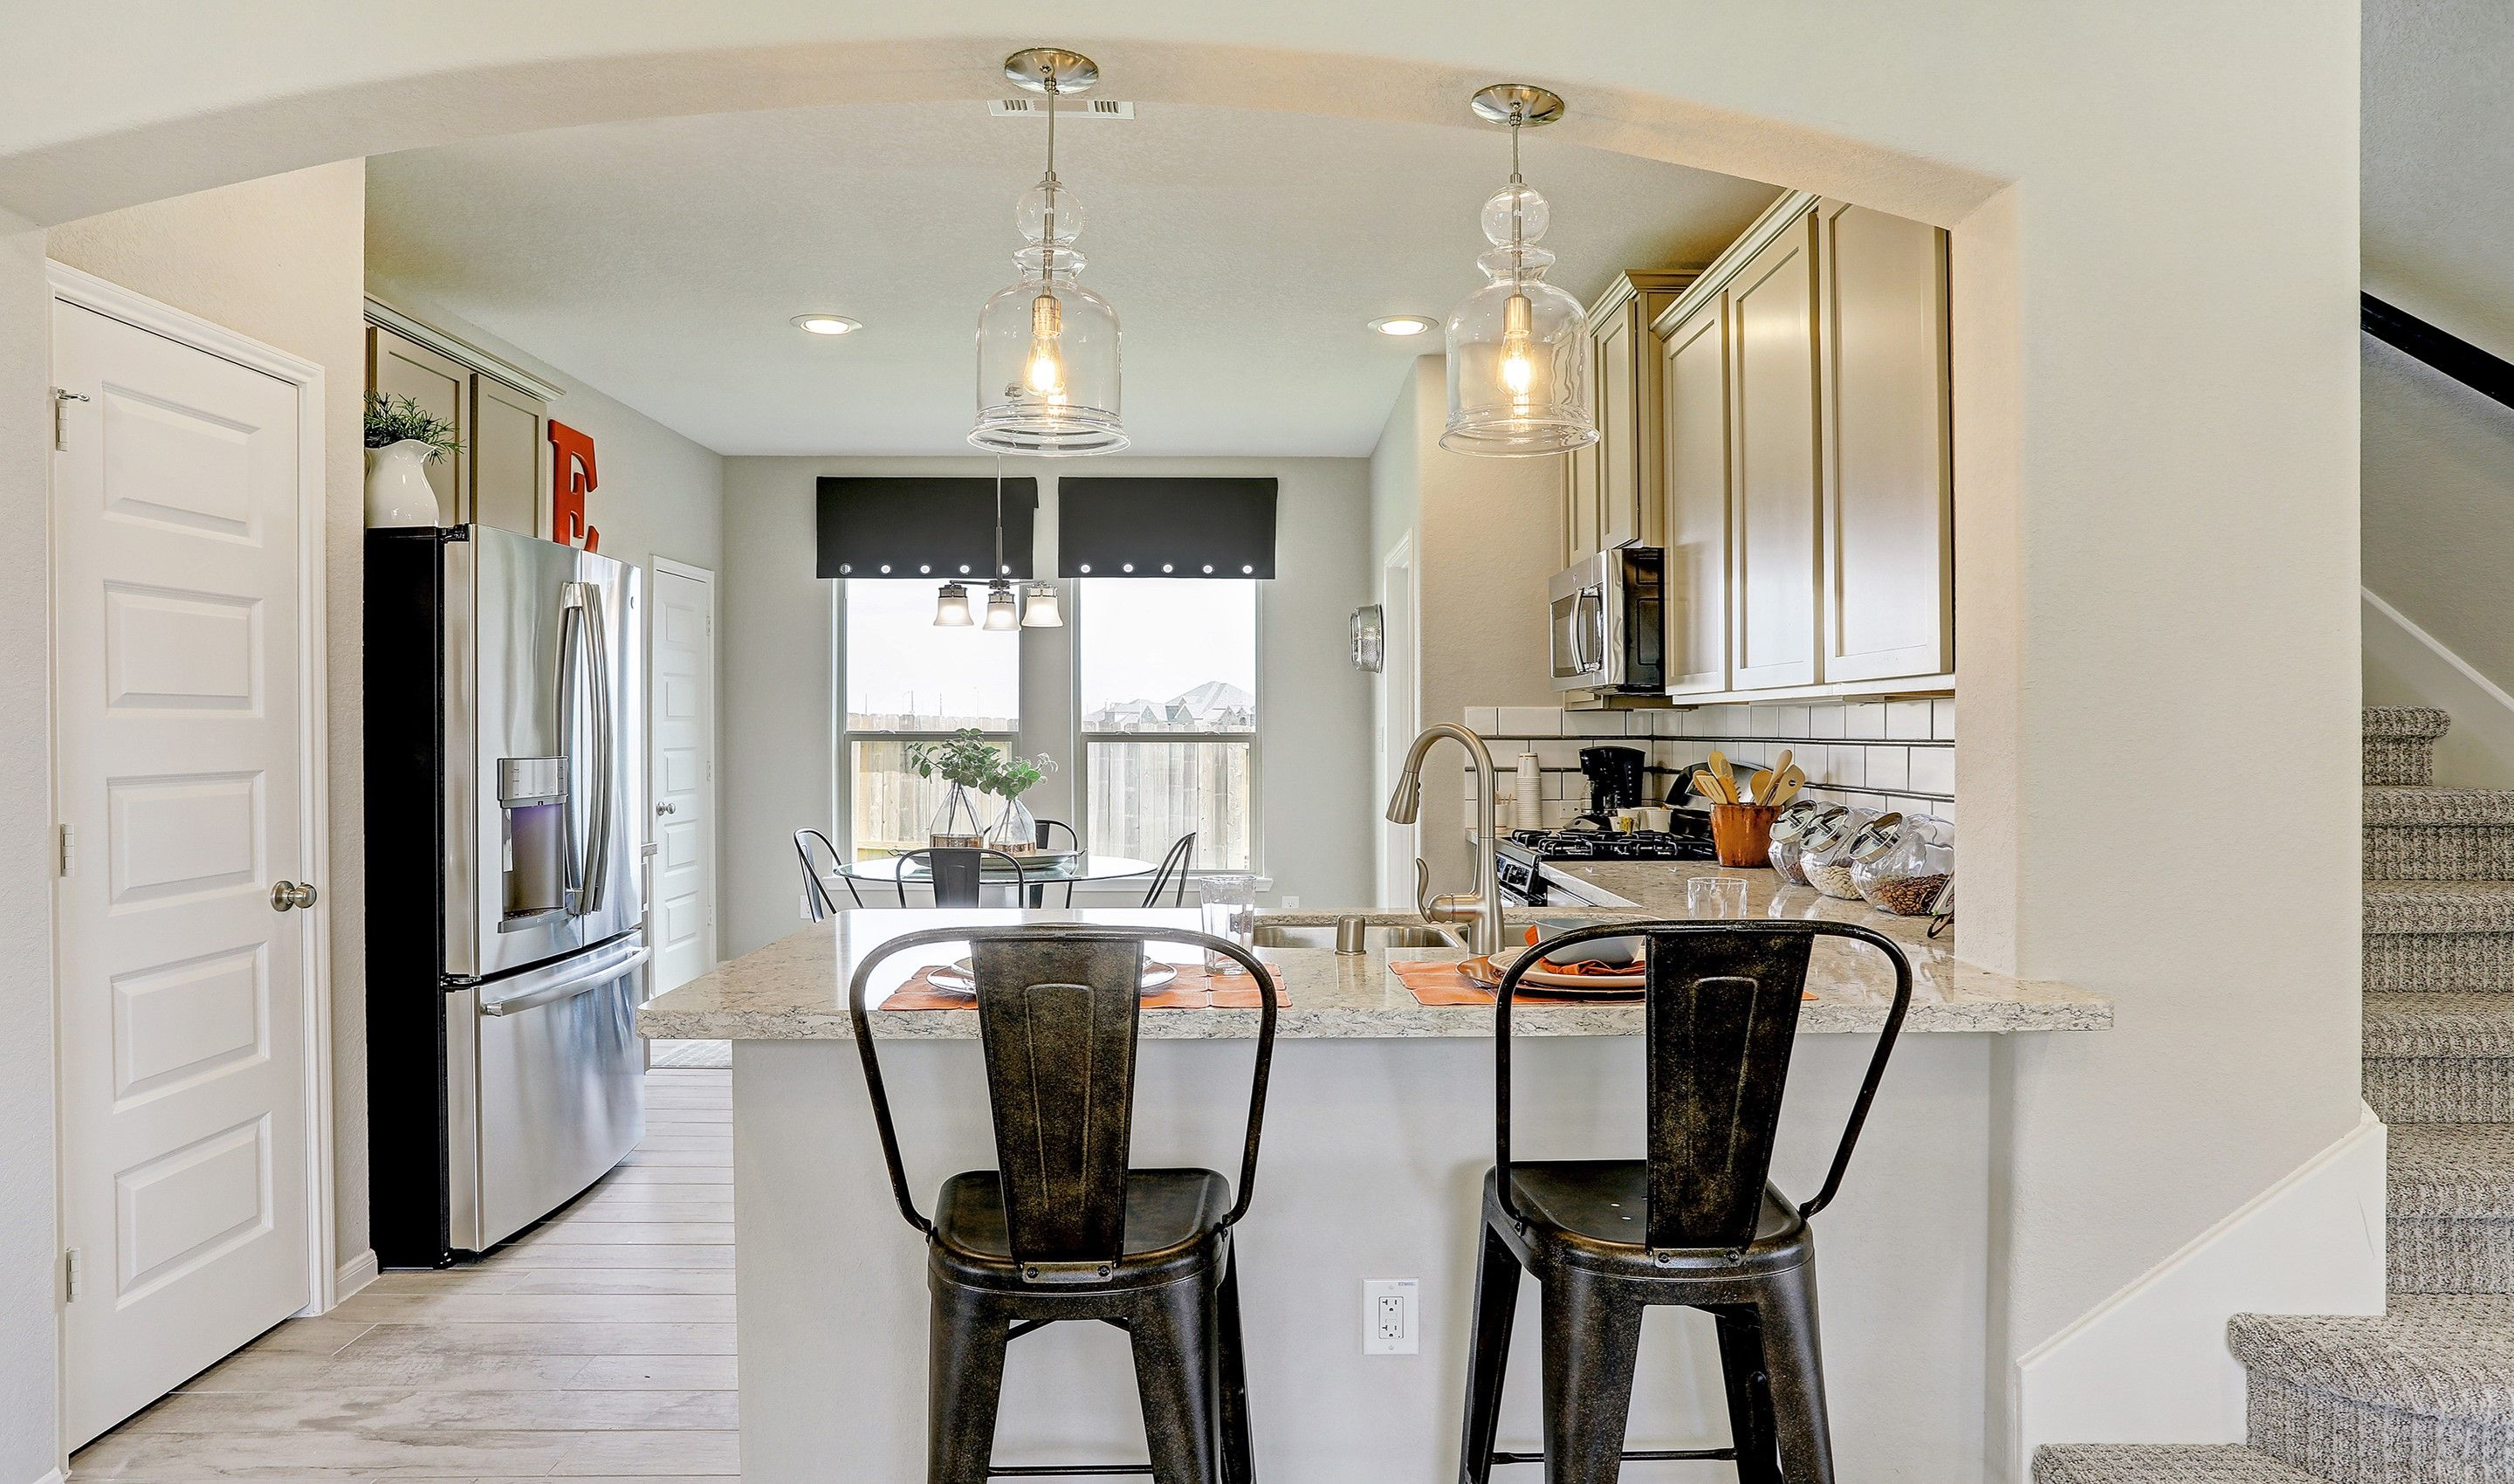 Kitchen-in-Hoover II-at-Lakes of Bella Terra West - 45' Homesites-in-Richmond